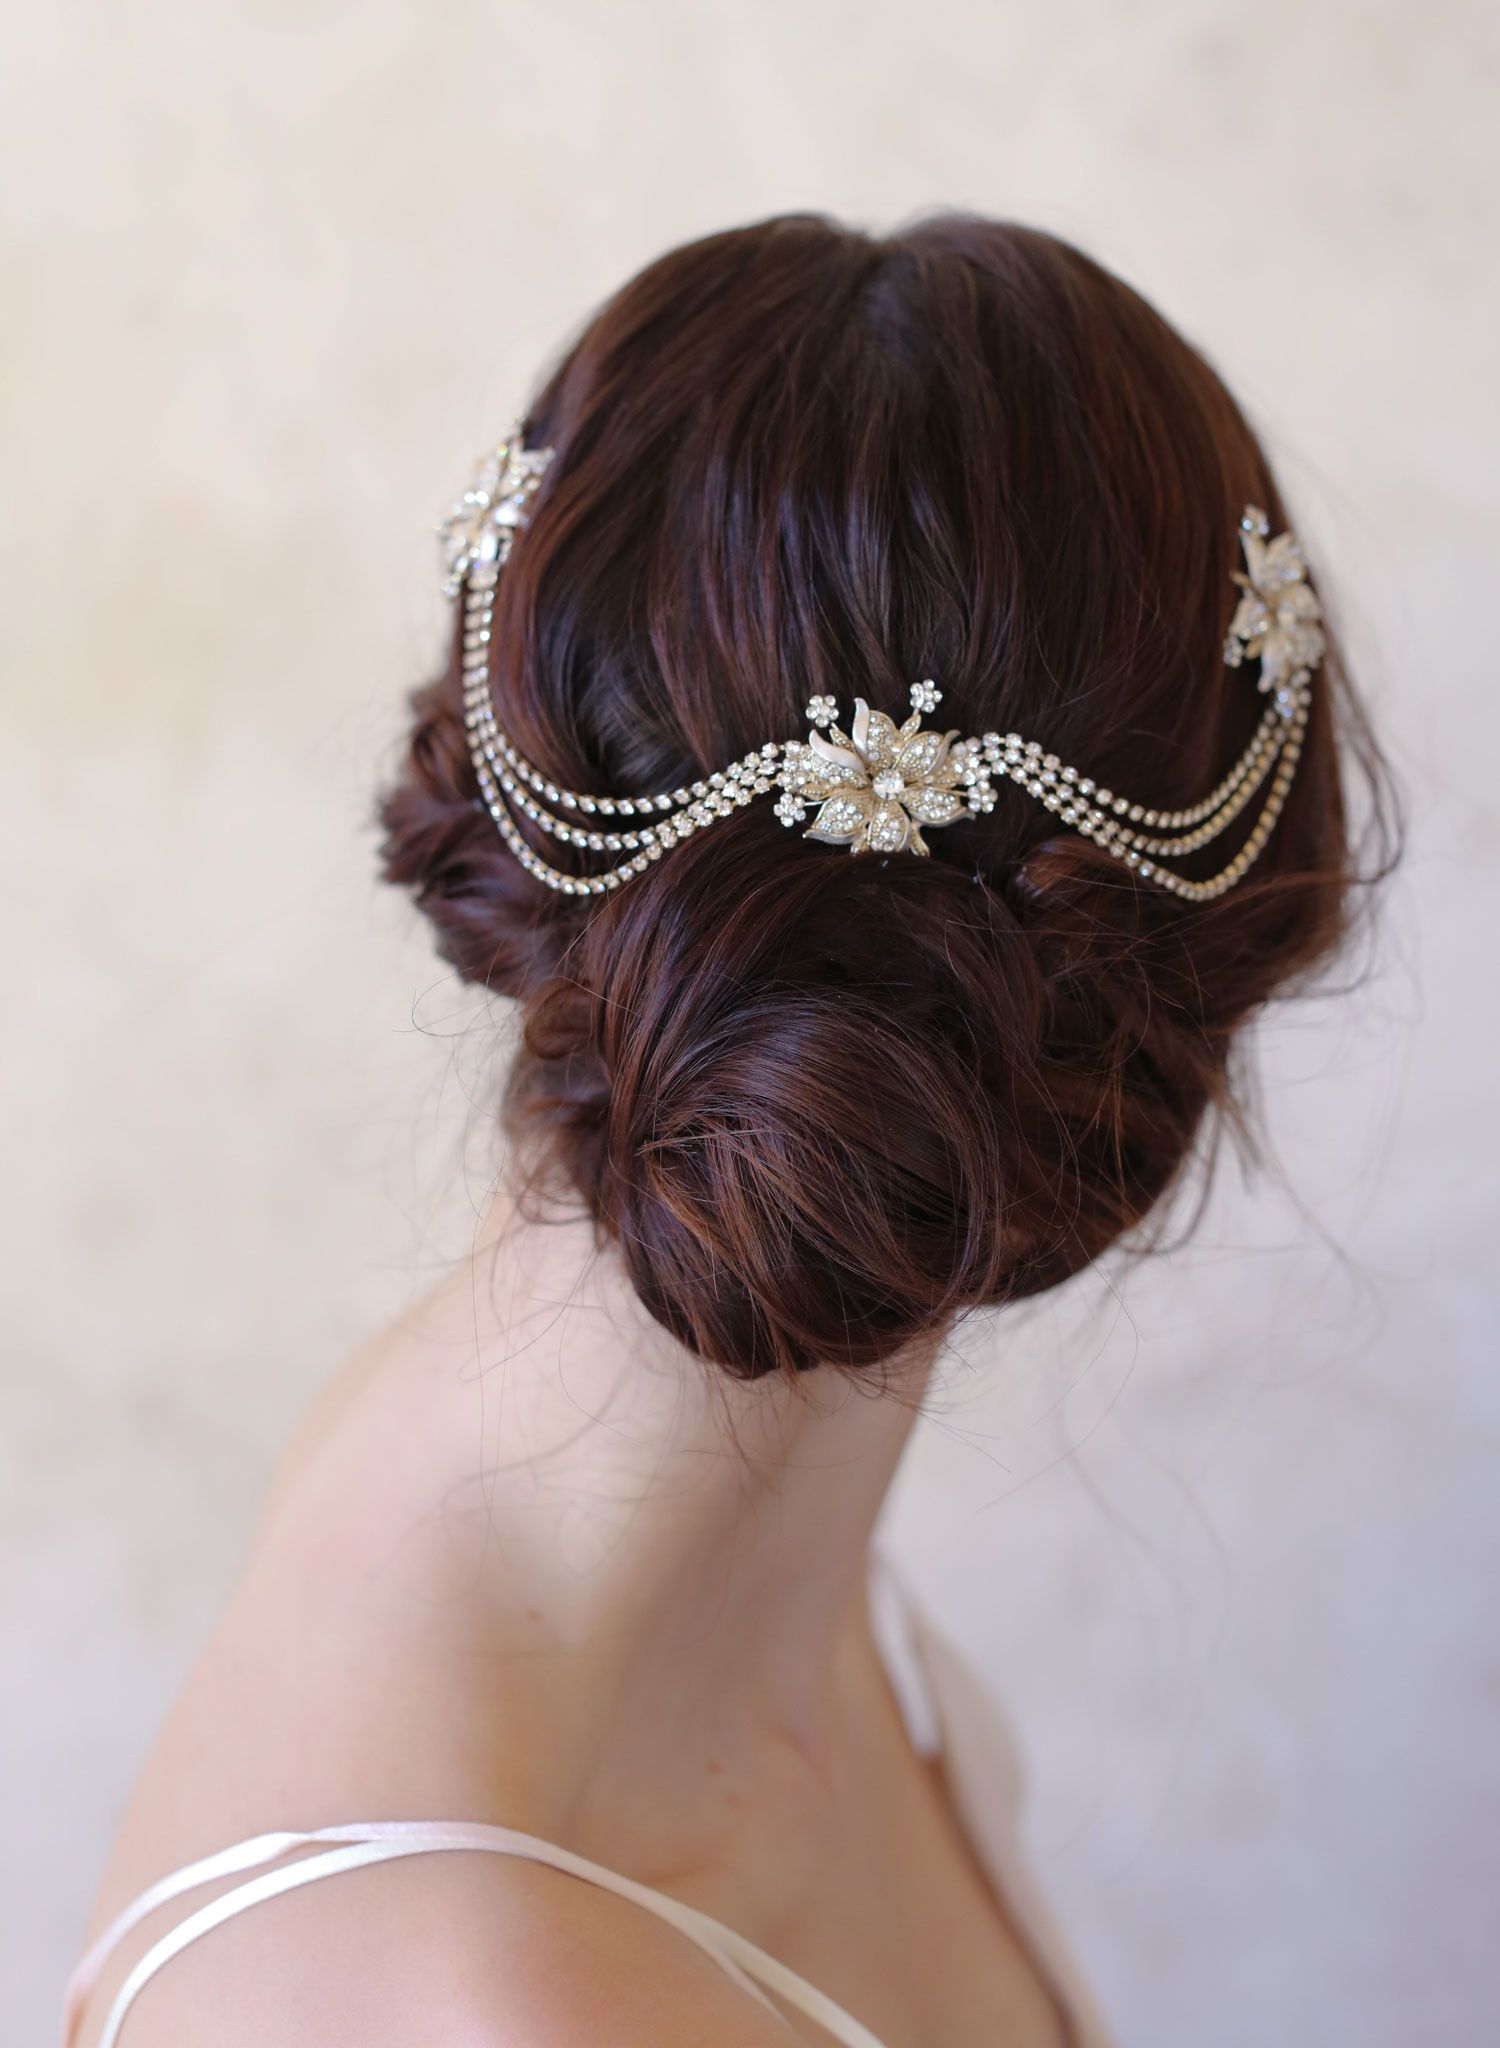 triple flower and swag headpiece - style #514 | headpieces, swag and